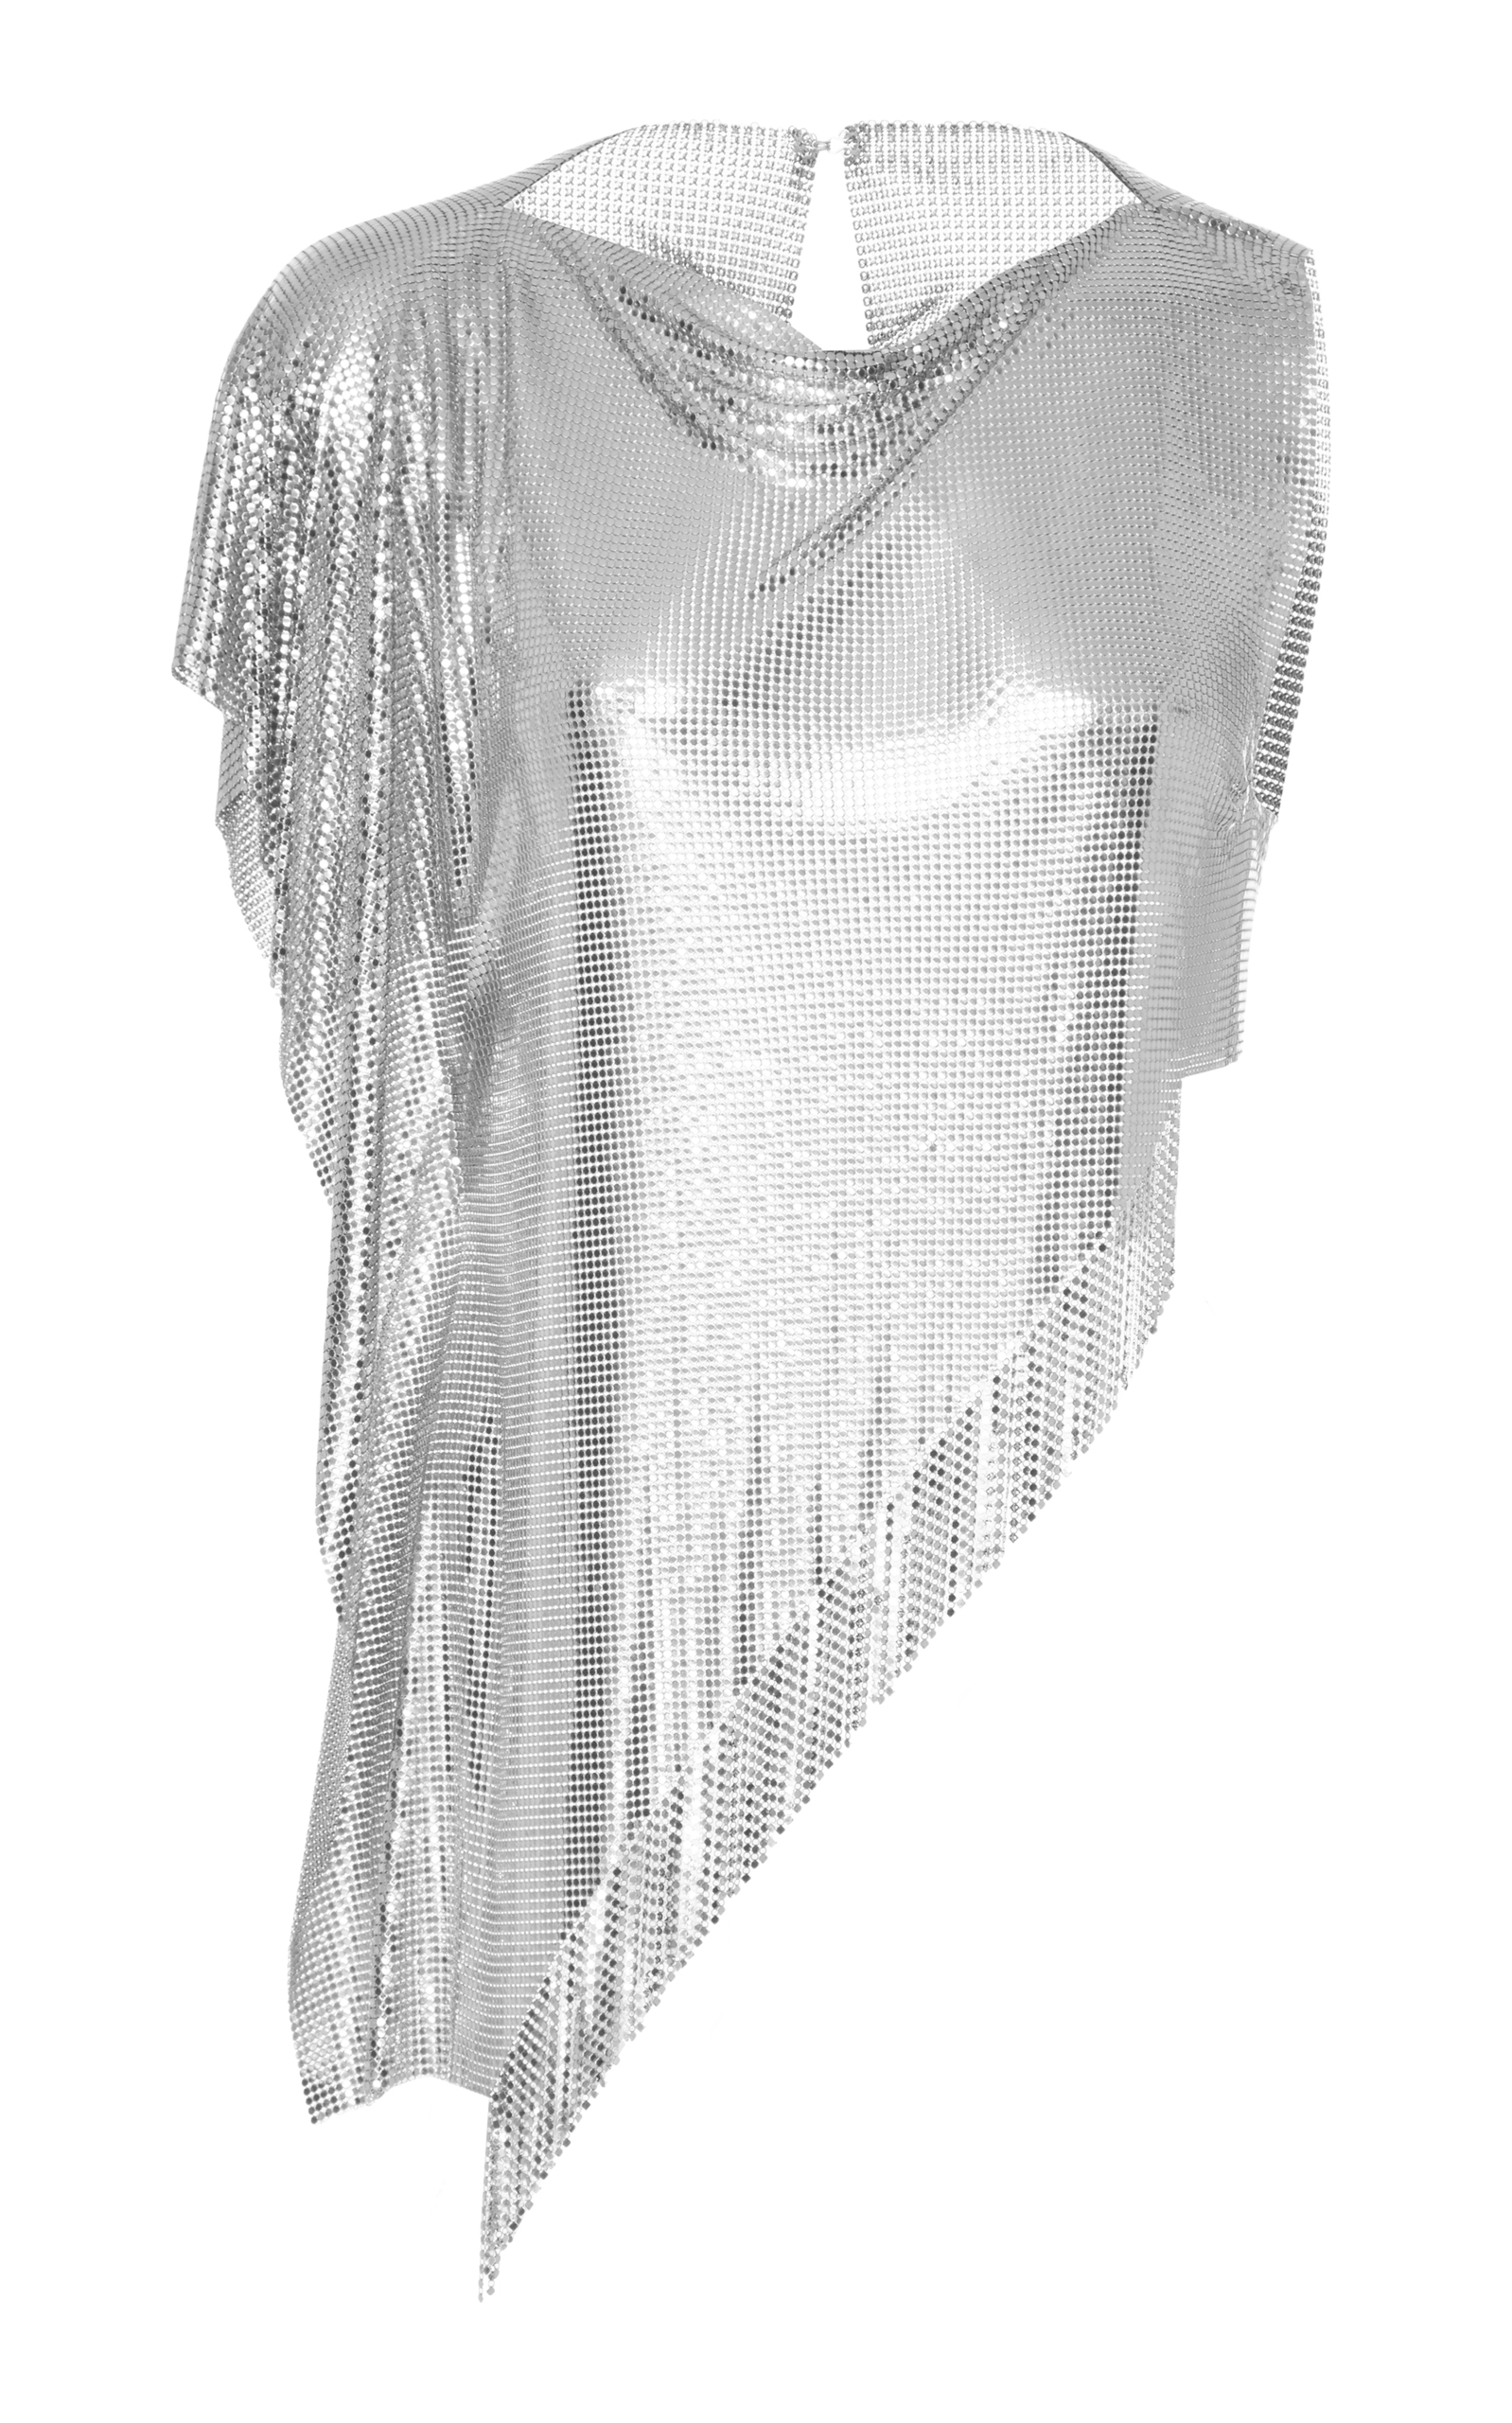 Free Shipping Sneakernews Asymmetric Fringe Mesh Top Fannie Schiavoni Cheap Visa Payment Clearance Pictures Sale Nicekicks View Online QmehggQ